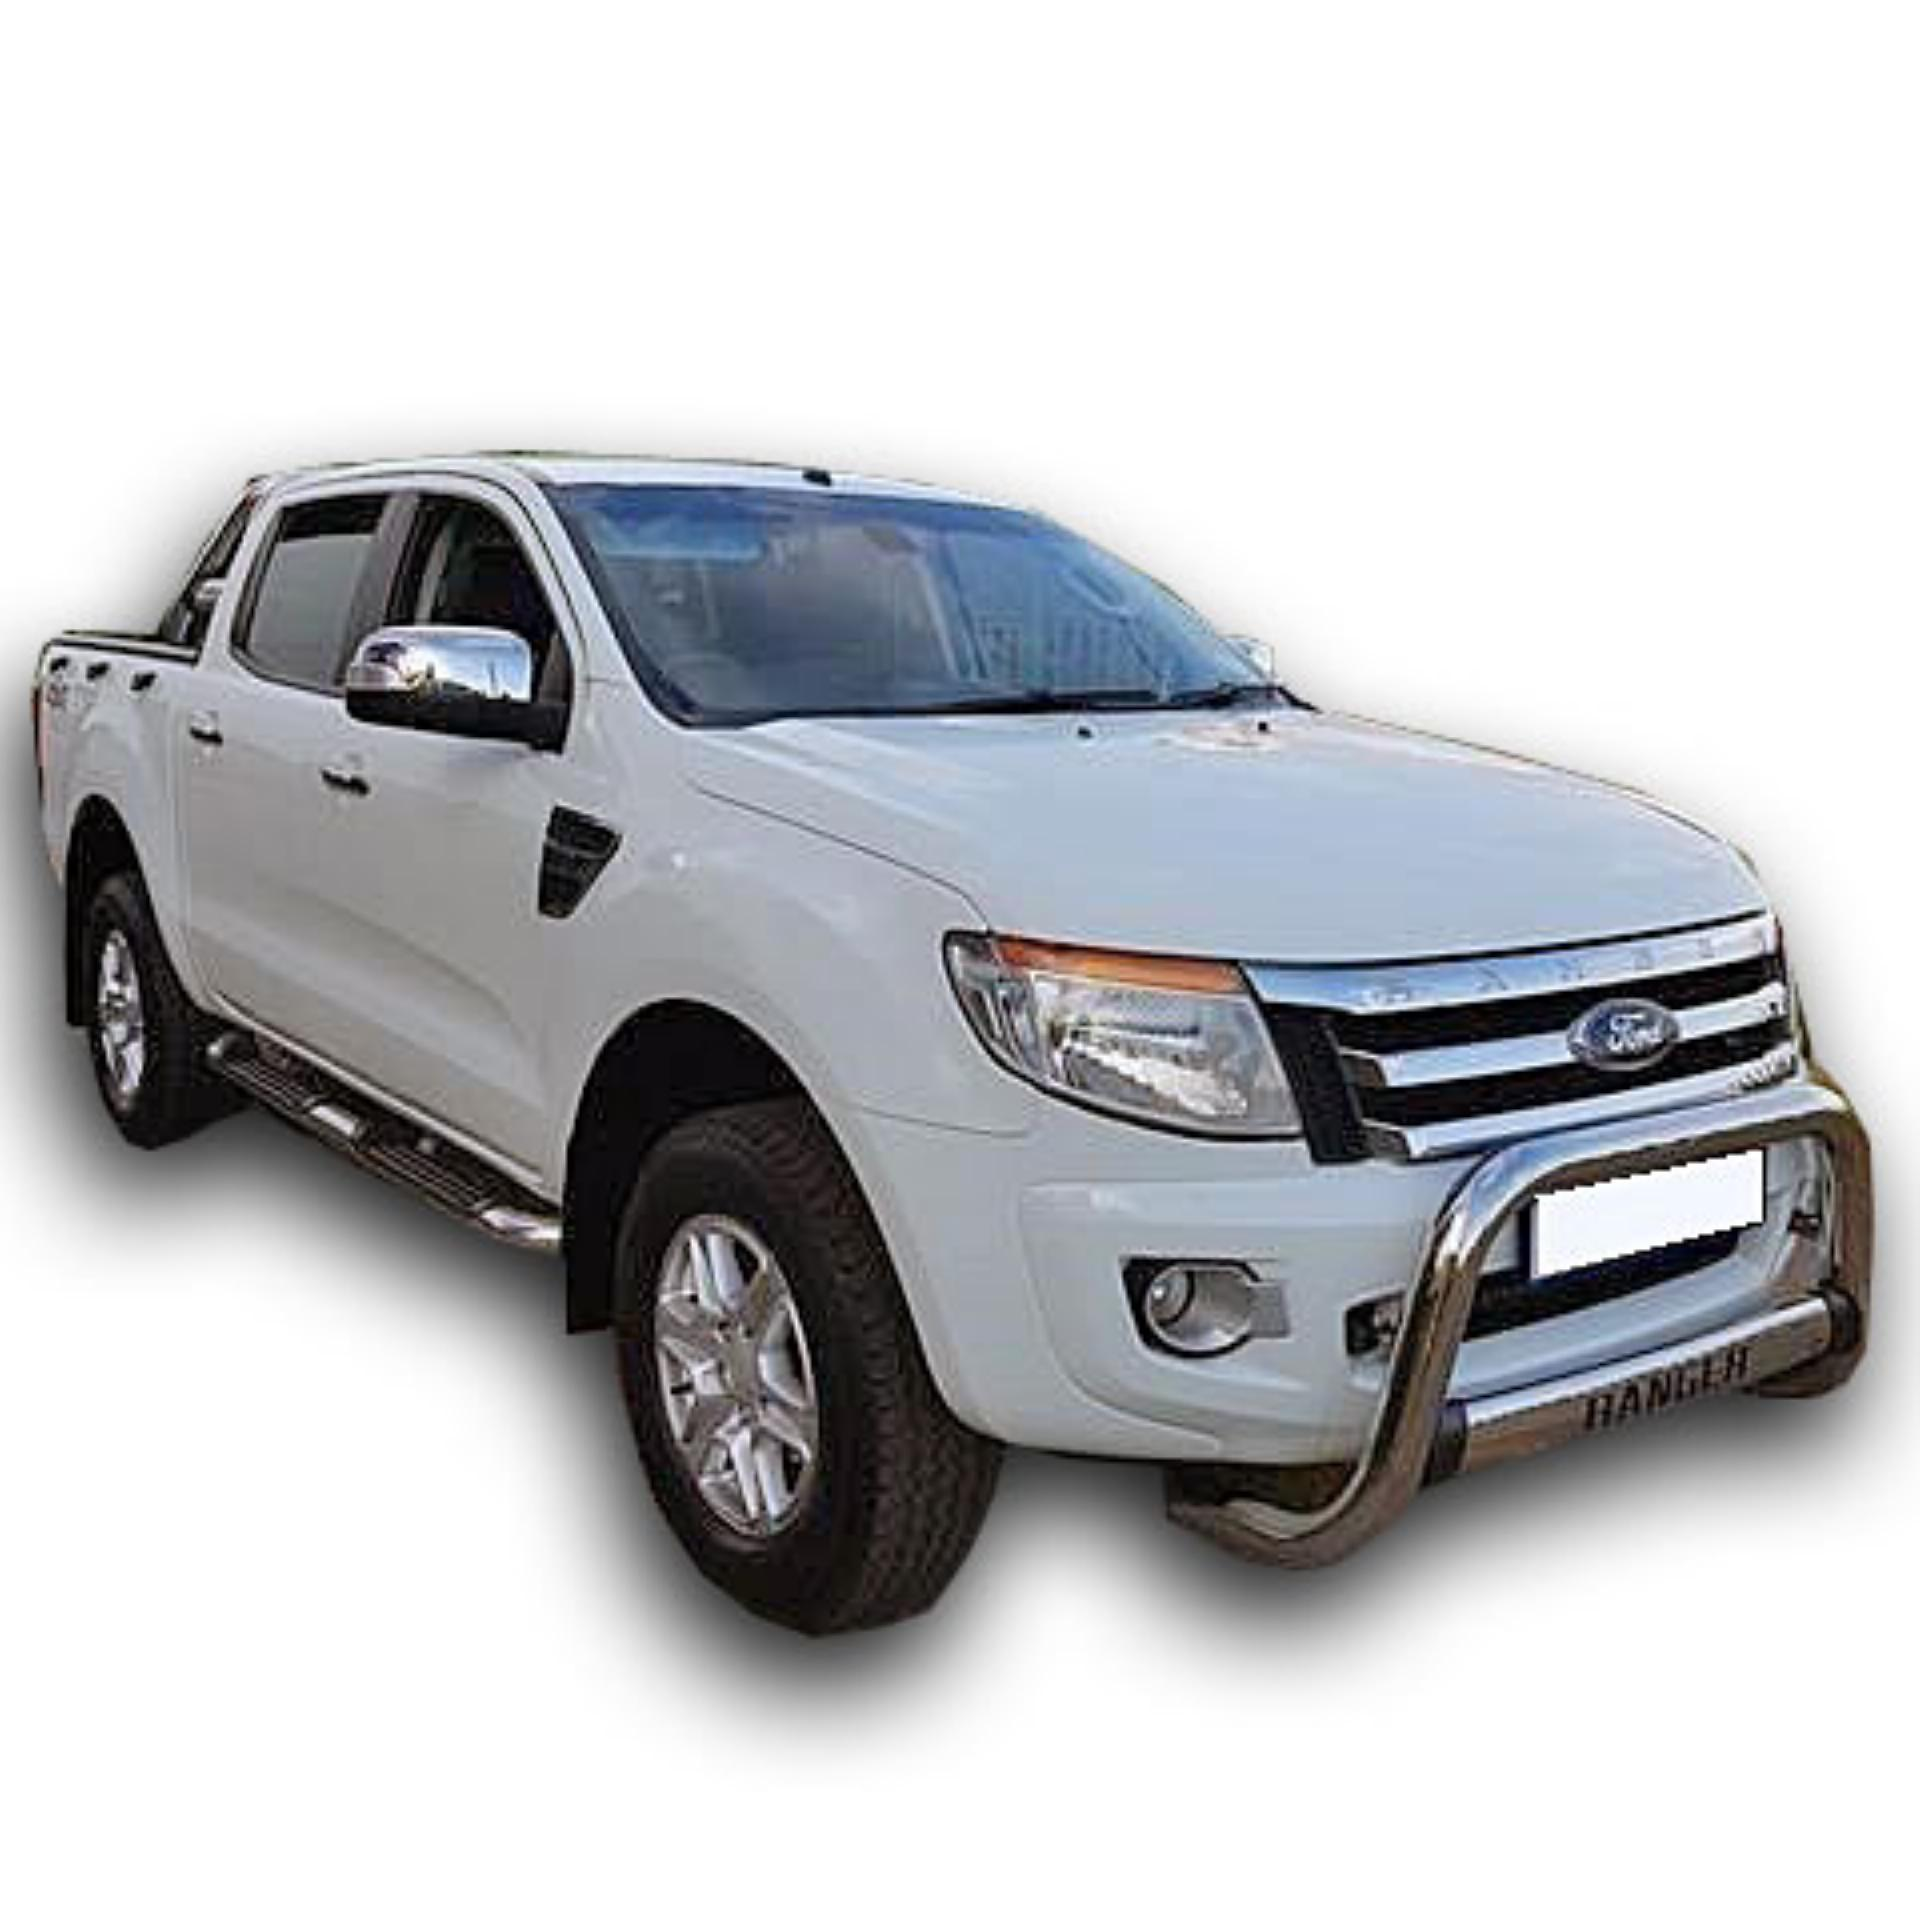 Ford Ranger 3.2 Automatic